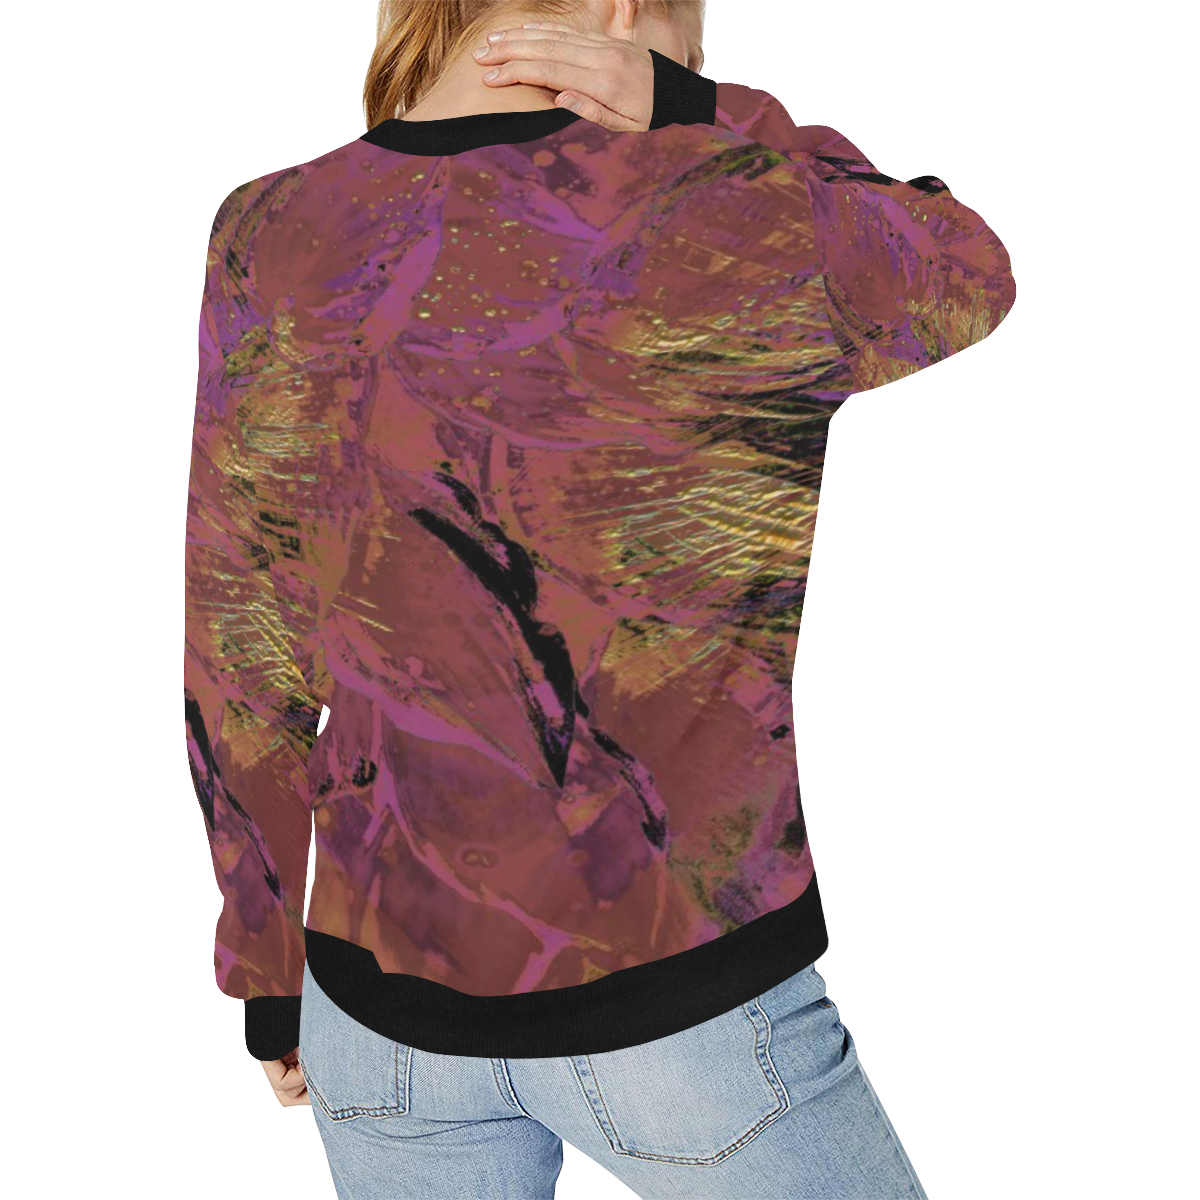 wheelVibe_8500 2 low Women's Rib Cuff Crew Neck Sweatshirt (Model H34)